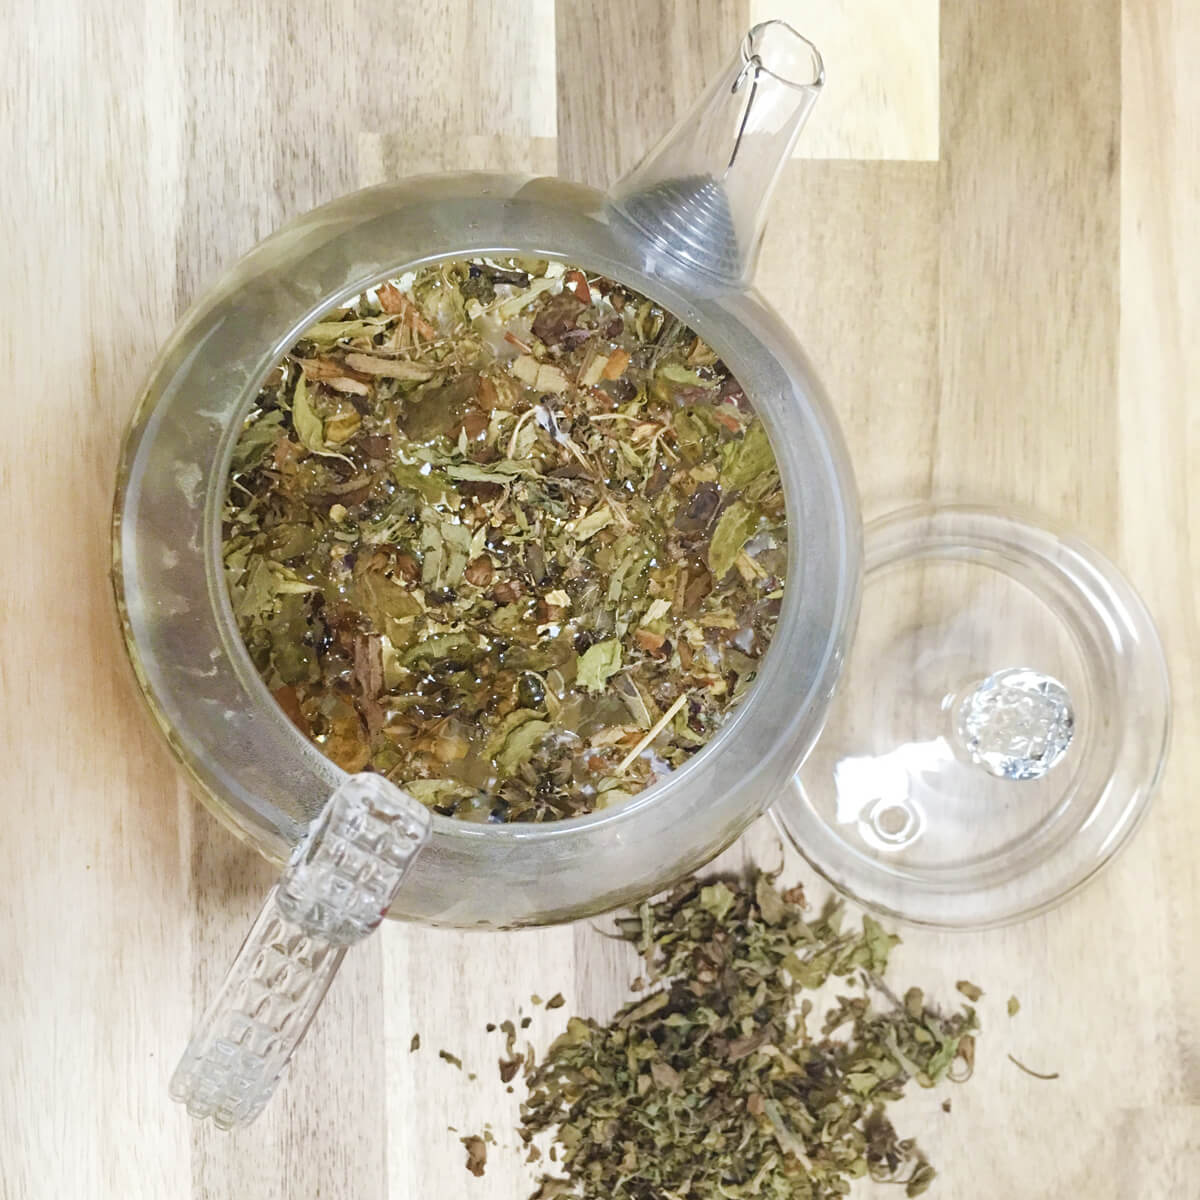 Overhead view of a glass teapot full of holy basil tea.